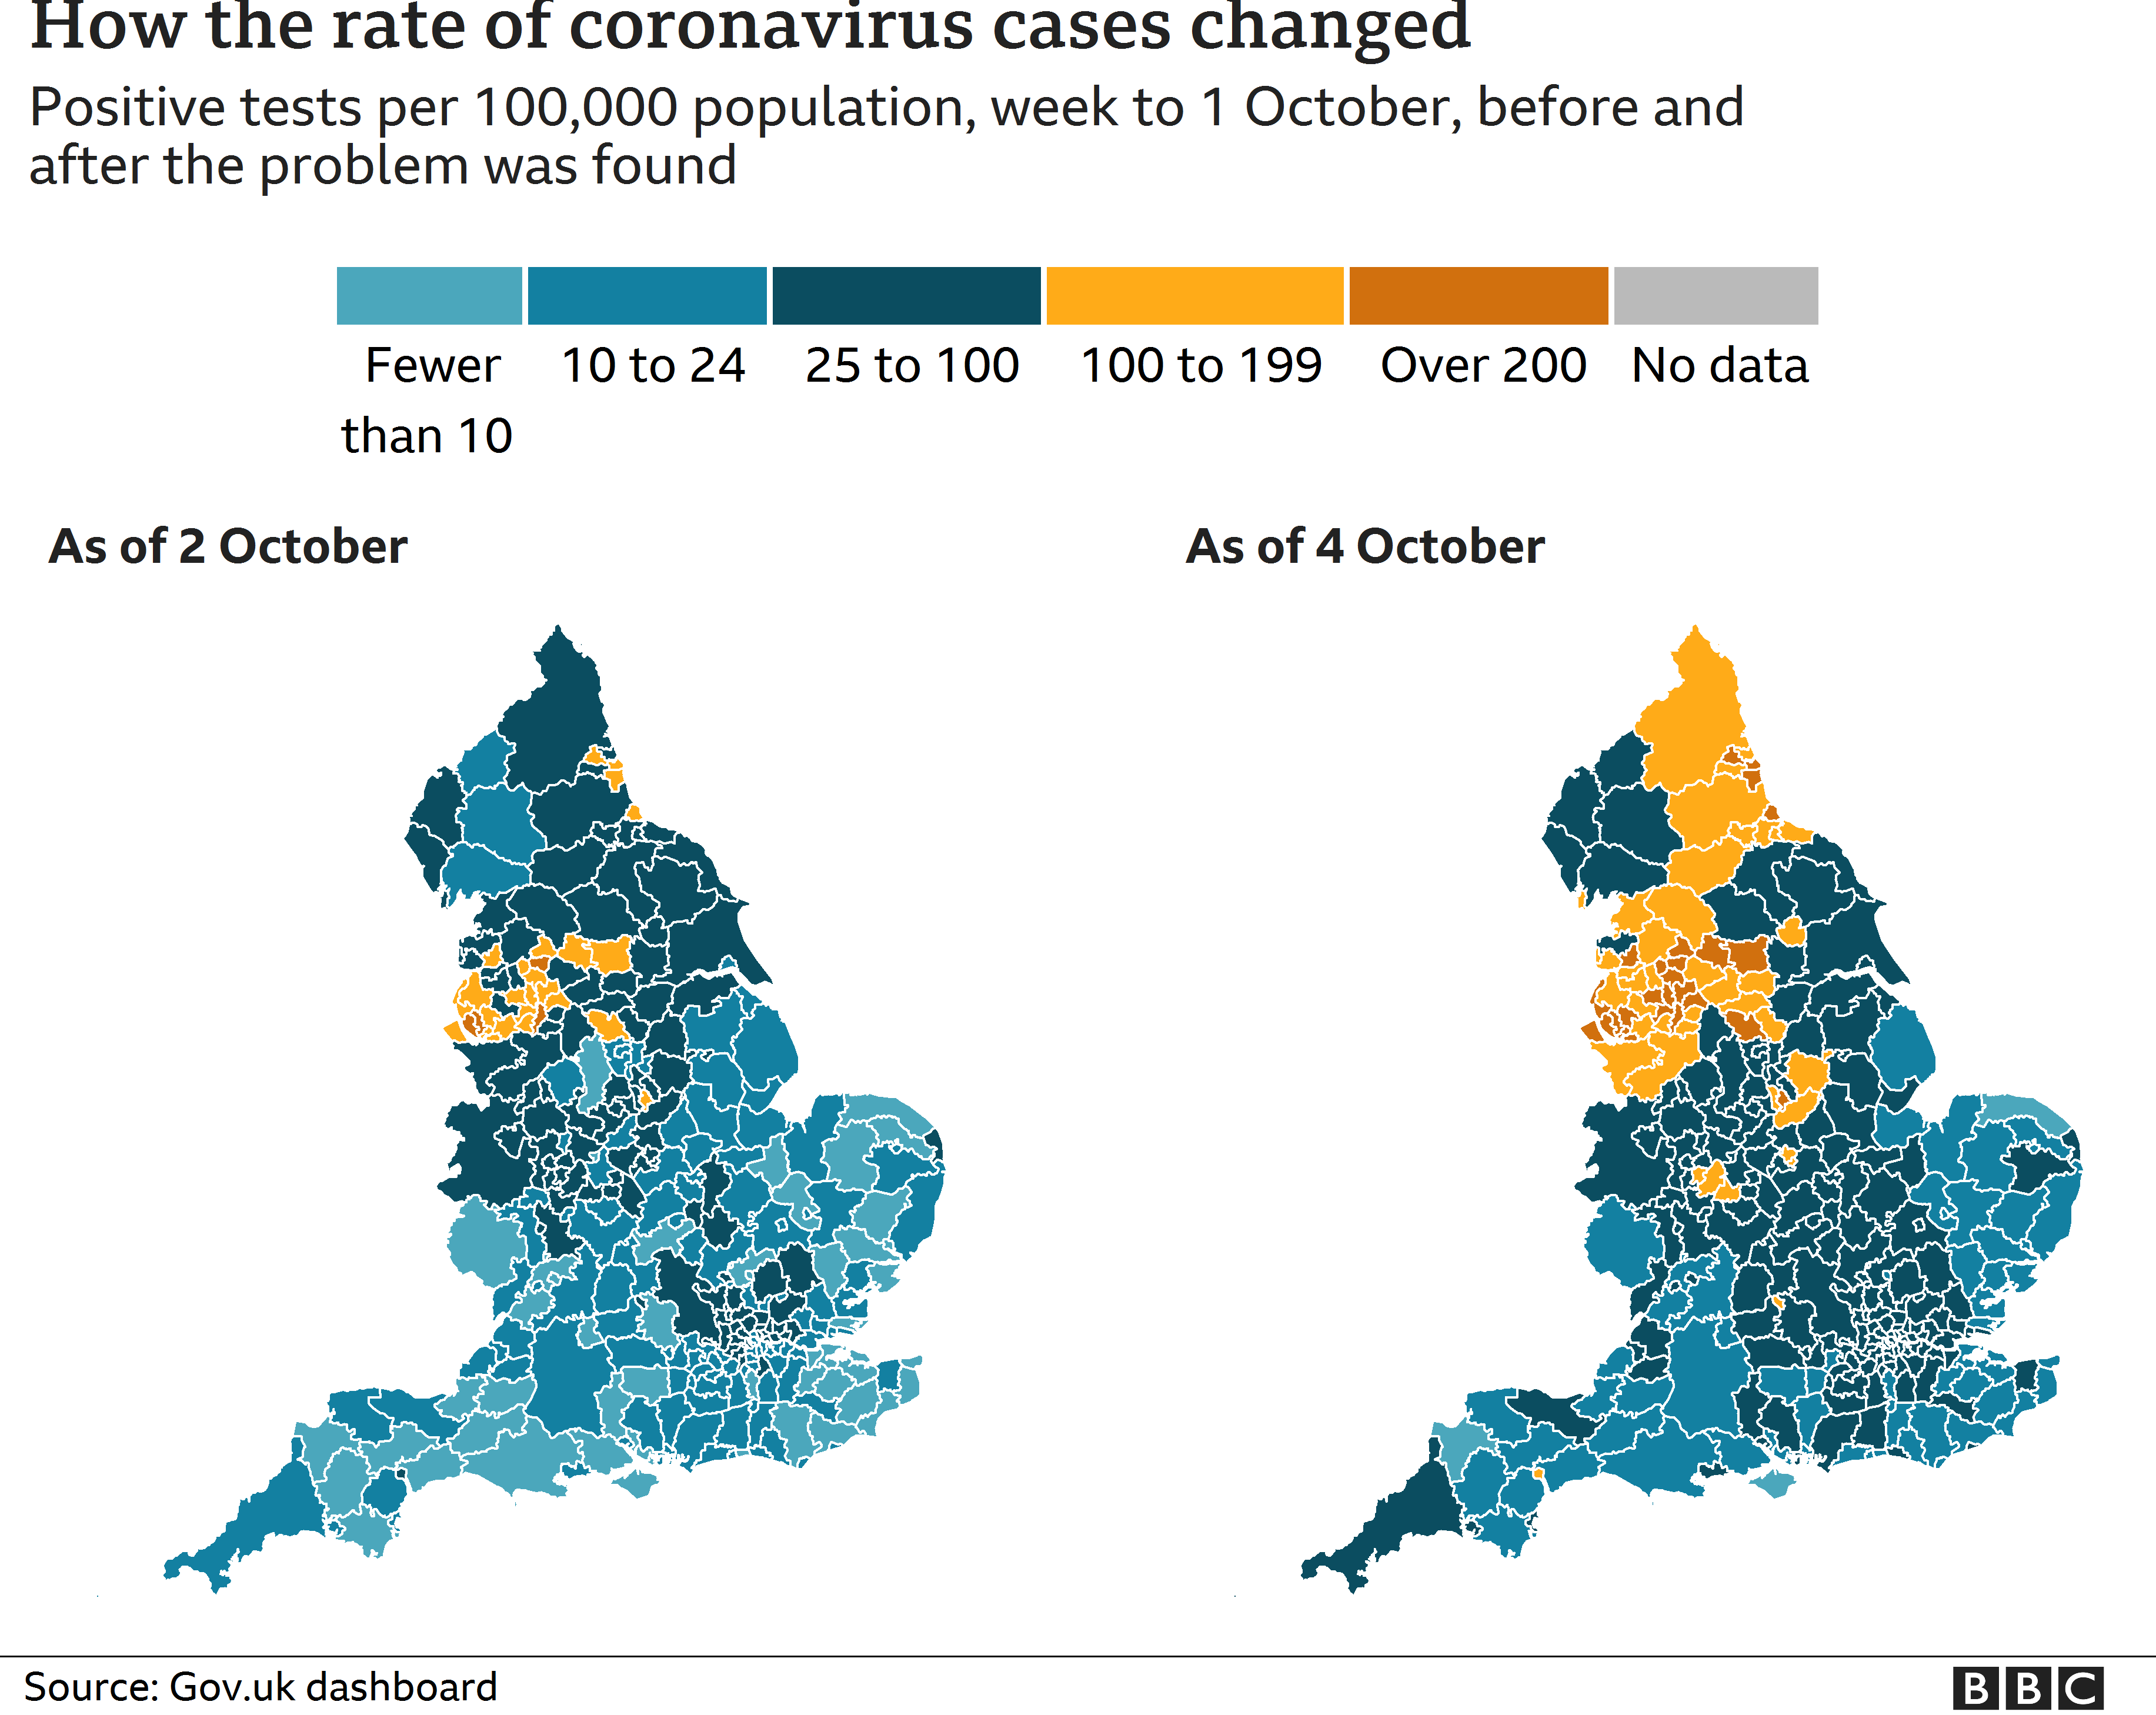 How the rate of positive cases changes